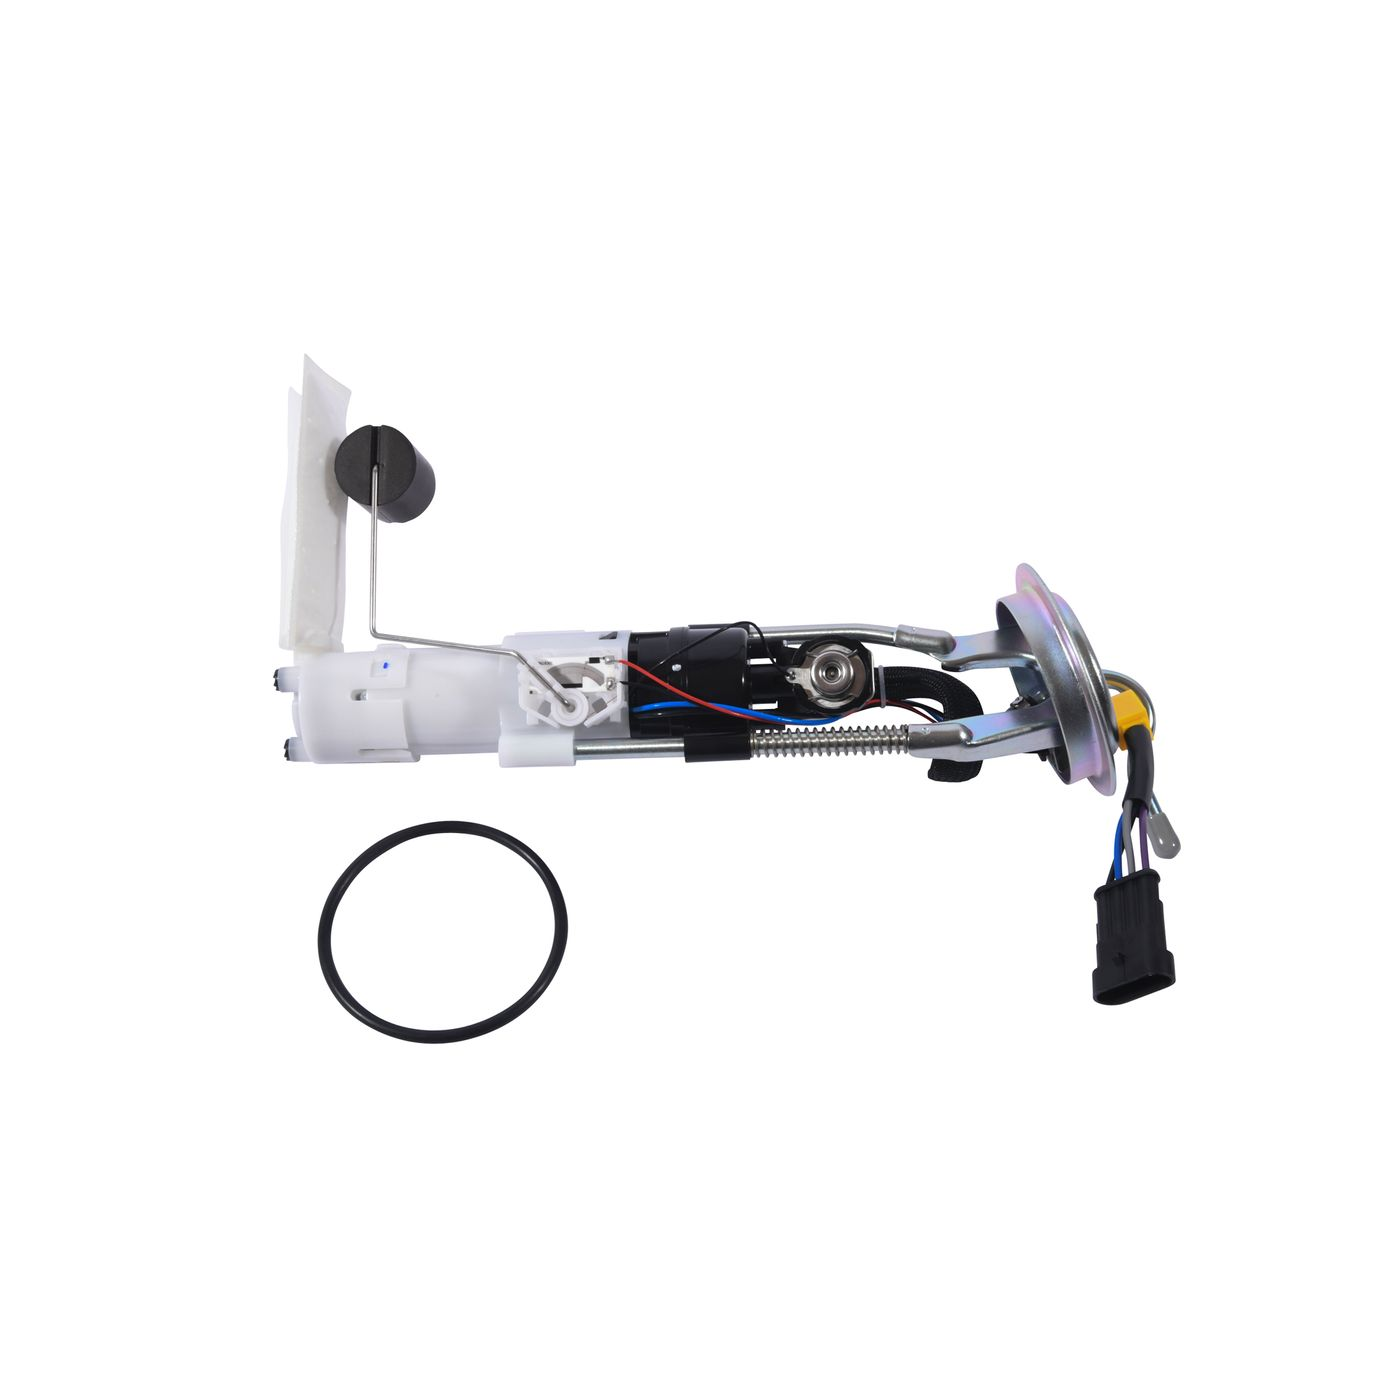 Wrp Fuel Pump Modules - WRP471026 image